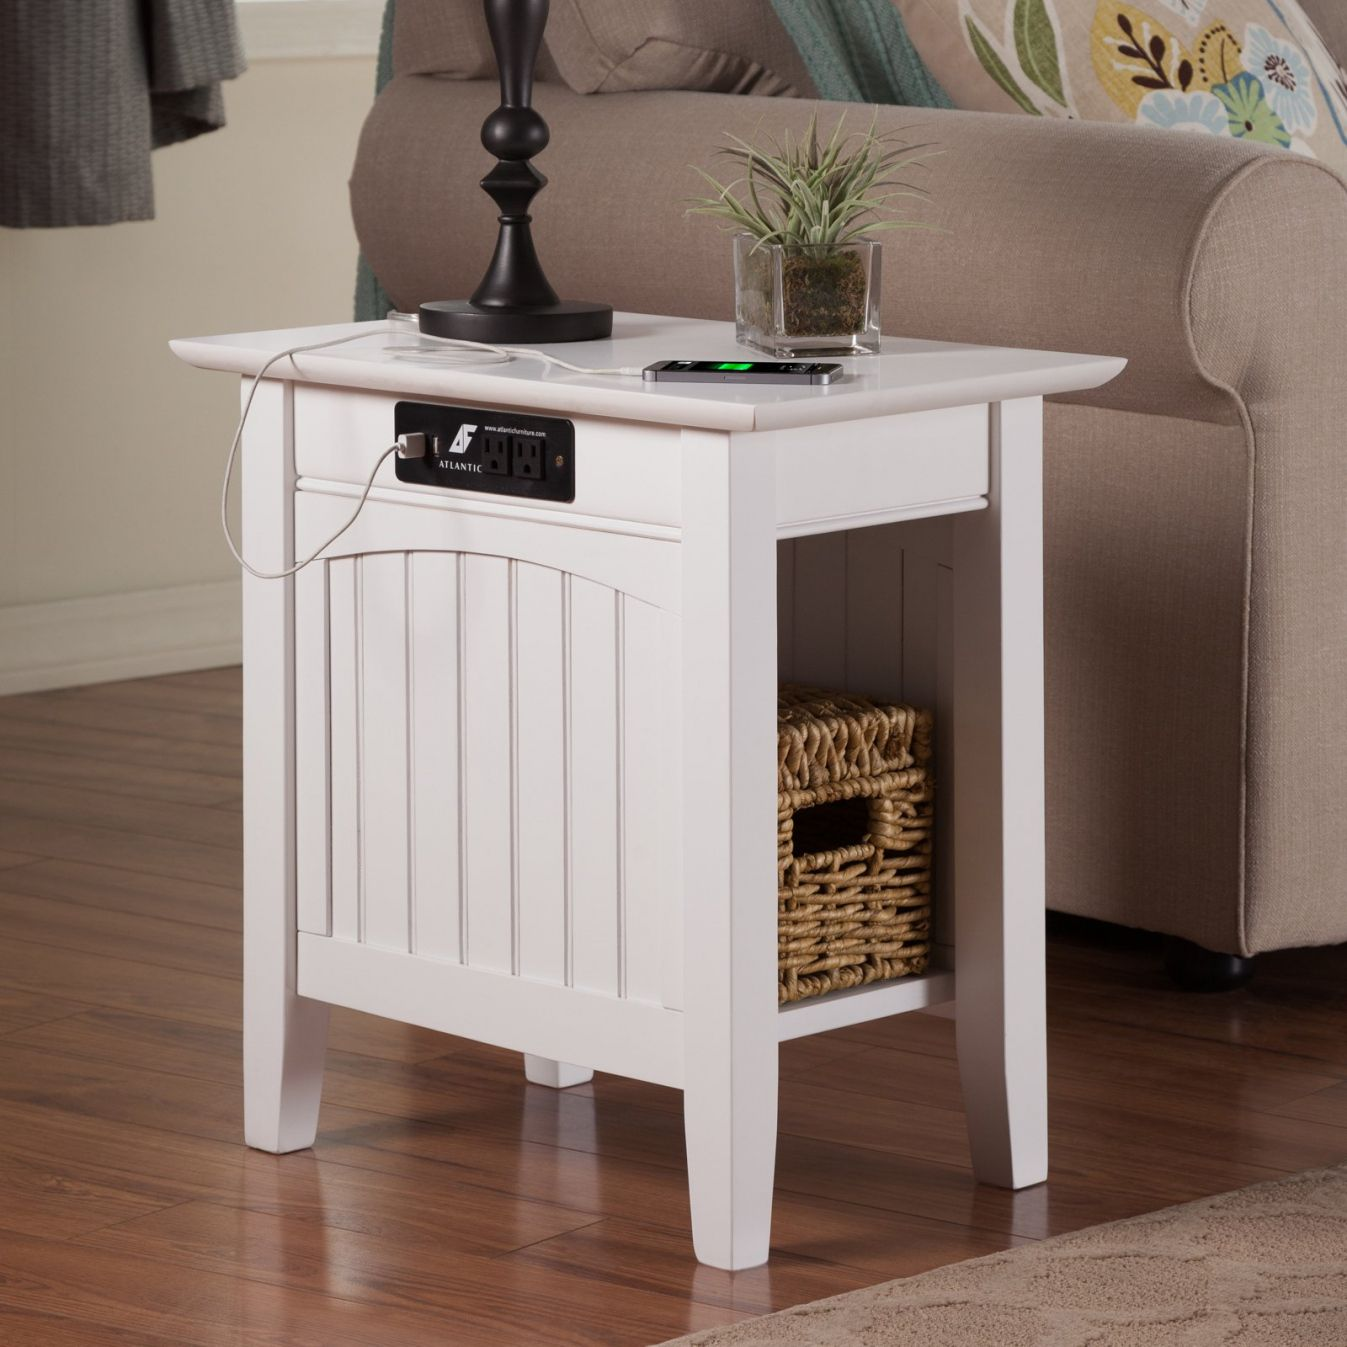 End Table Charging Station Luxury Modern Furniture Check More At Http Www Nikkitsfun